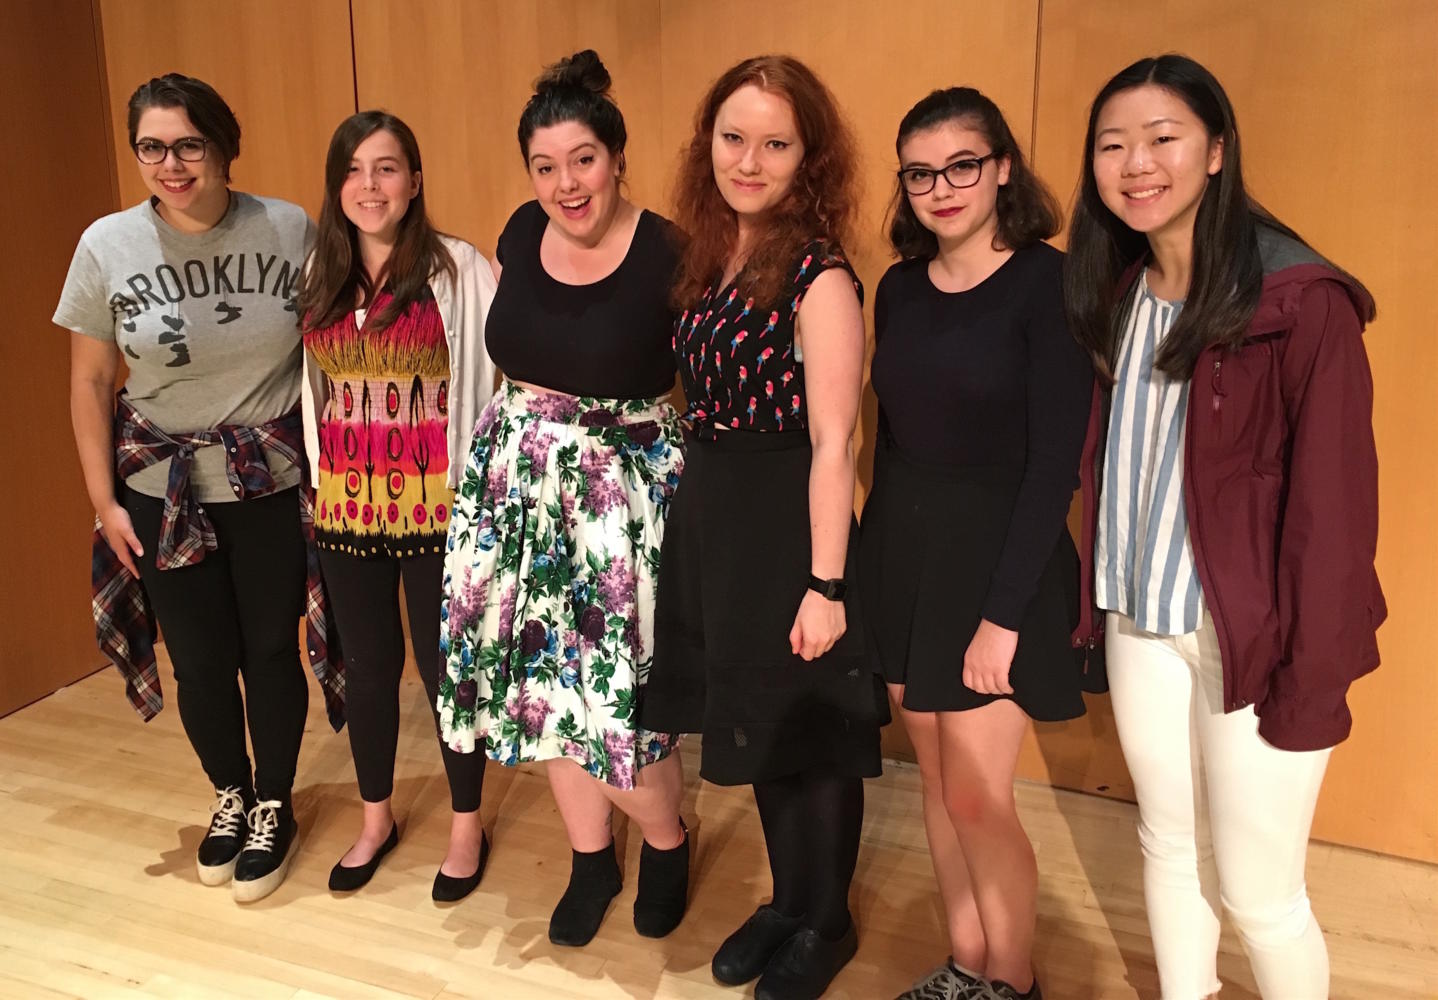 Singer Mary Lambert (third from left) poses with student reporters after a recent interview at Framingham State University. Her 14-city Everybody is a Babe tour will come to Sonia in Cambridge on Nov. 15, 2017.